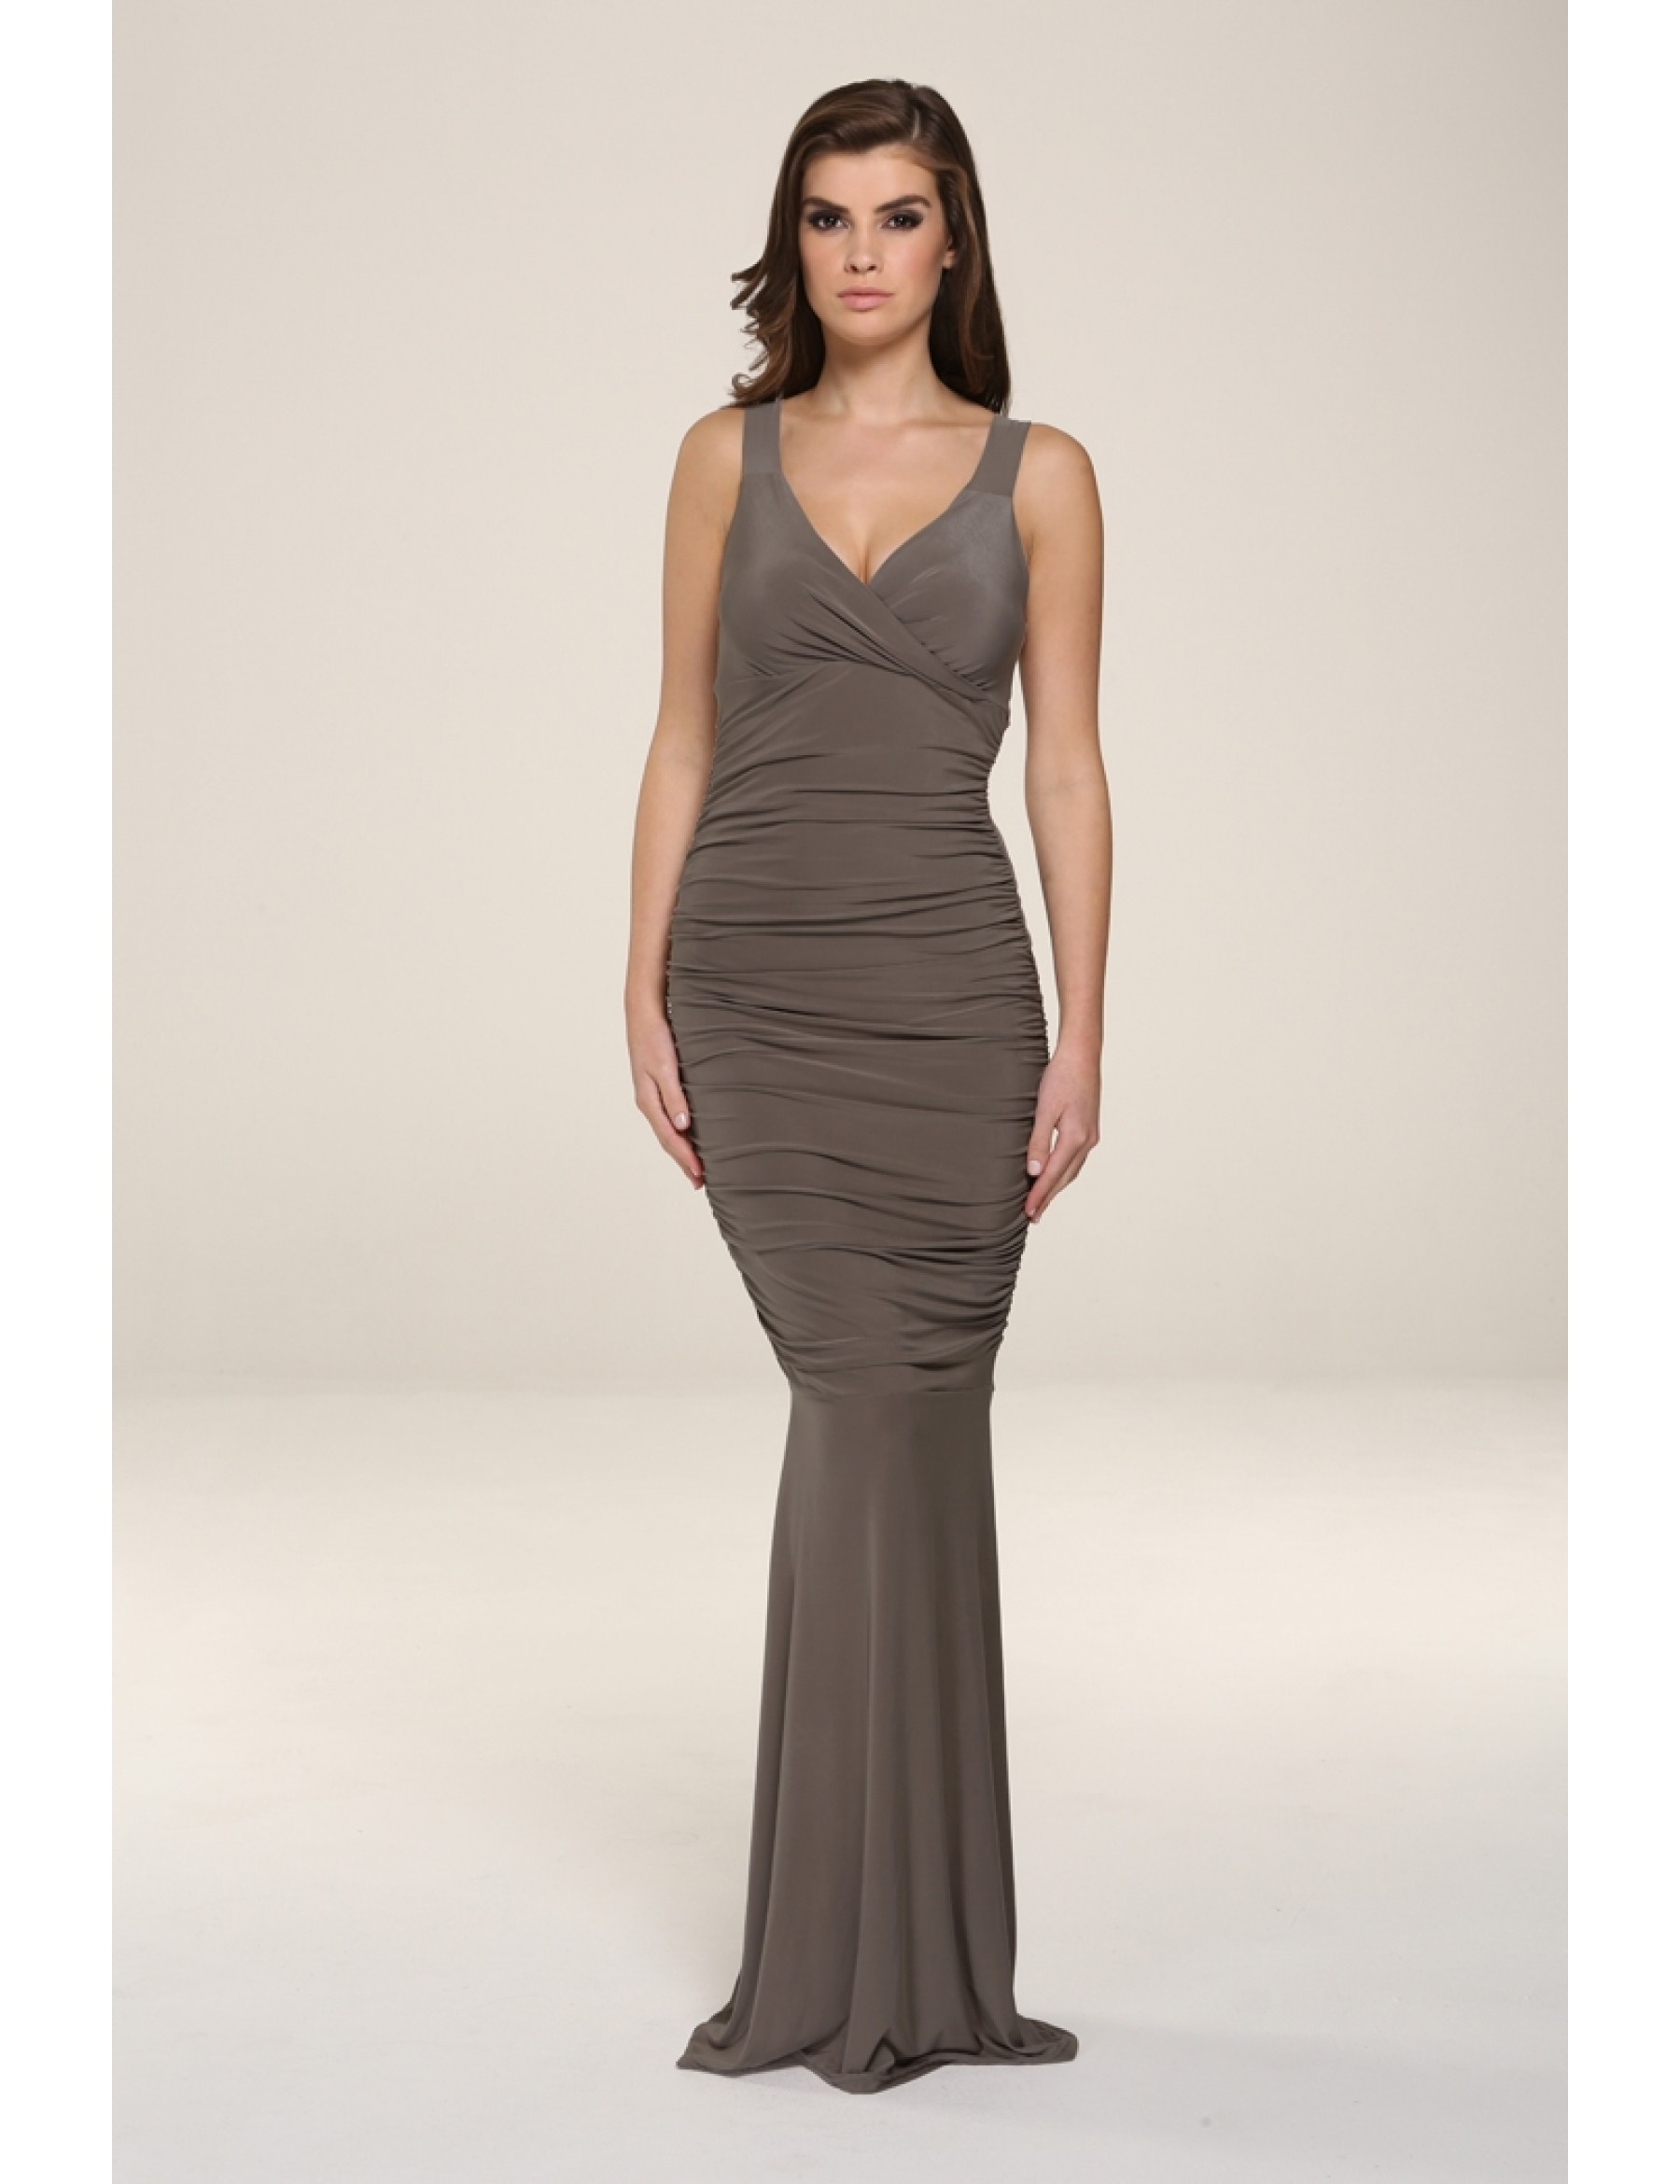 Gabriella Mocha Evening Dress